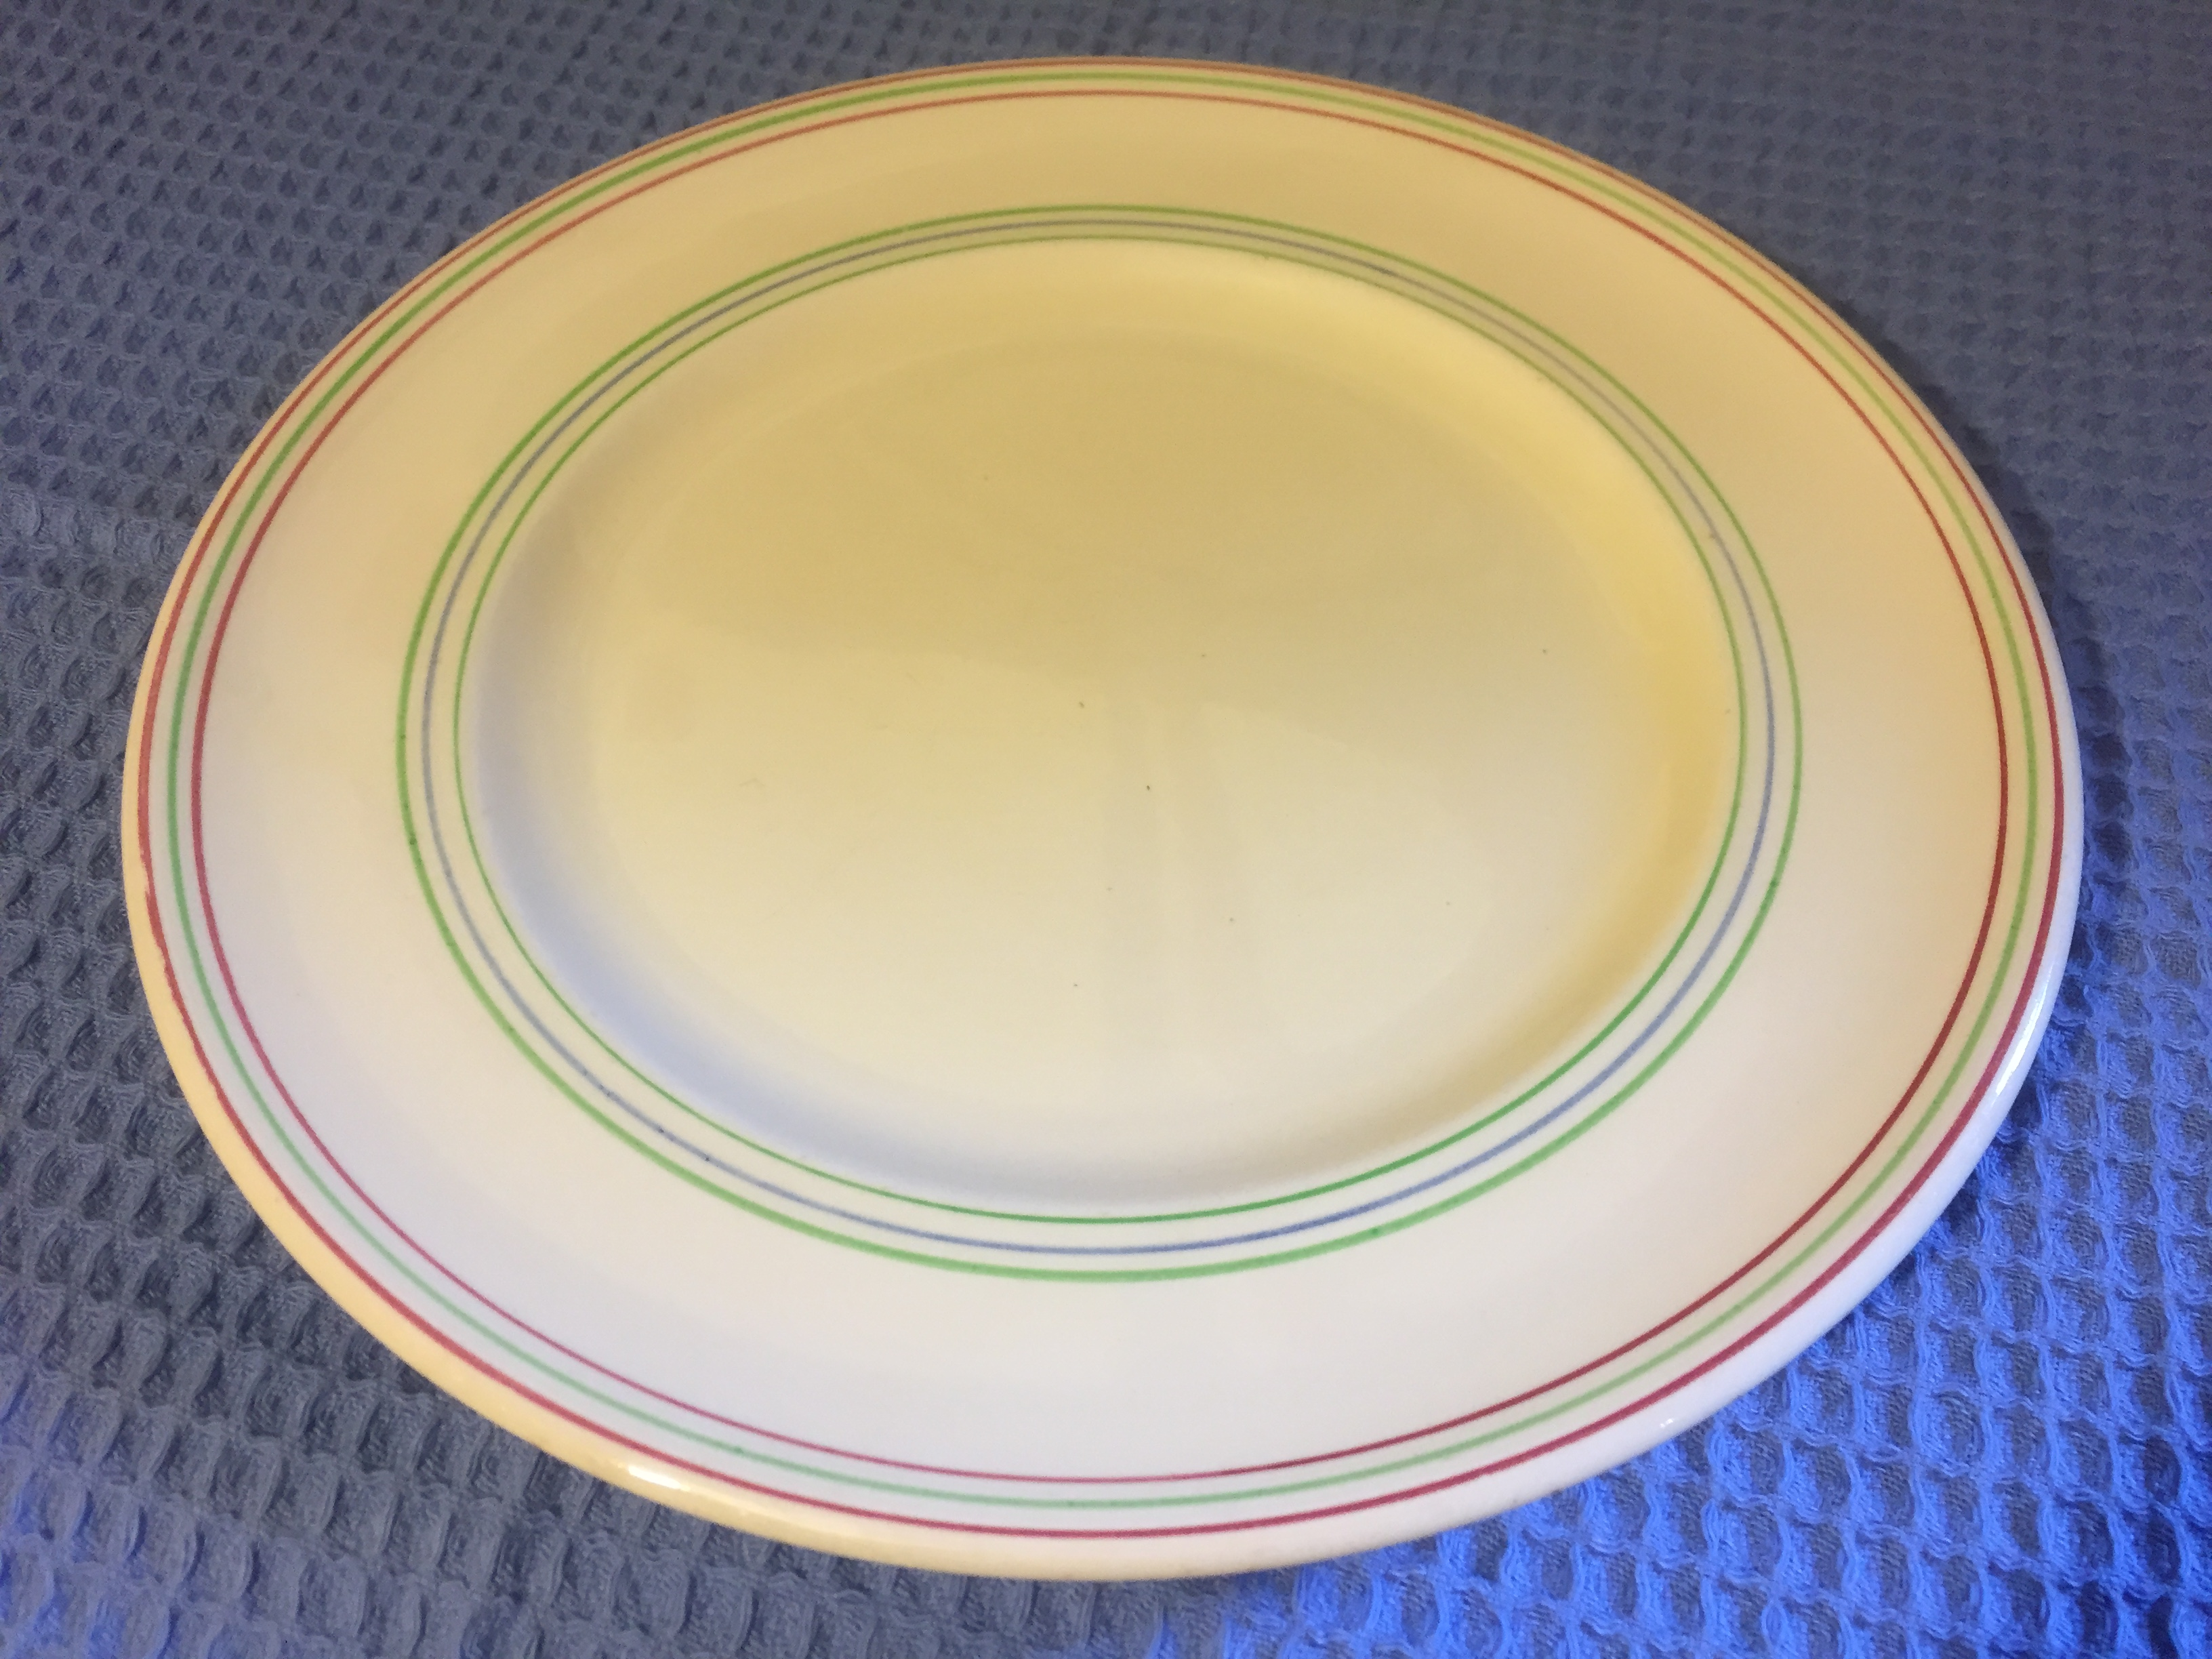 P&O LARGE SIZE DINNER PLATE PRODUCED IN THE EARLY TRADITIONAL DESIGN